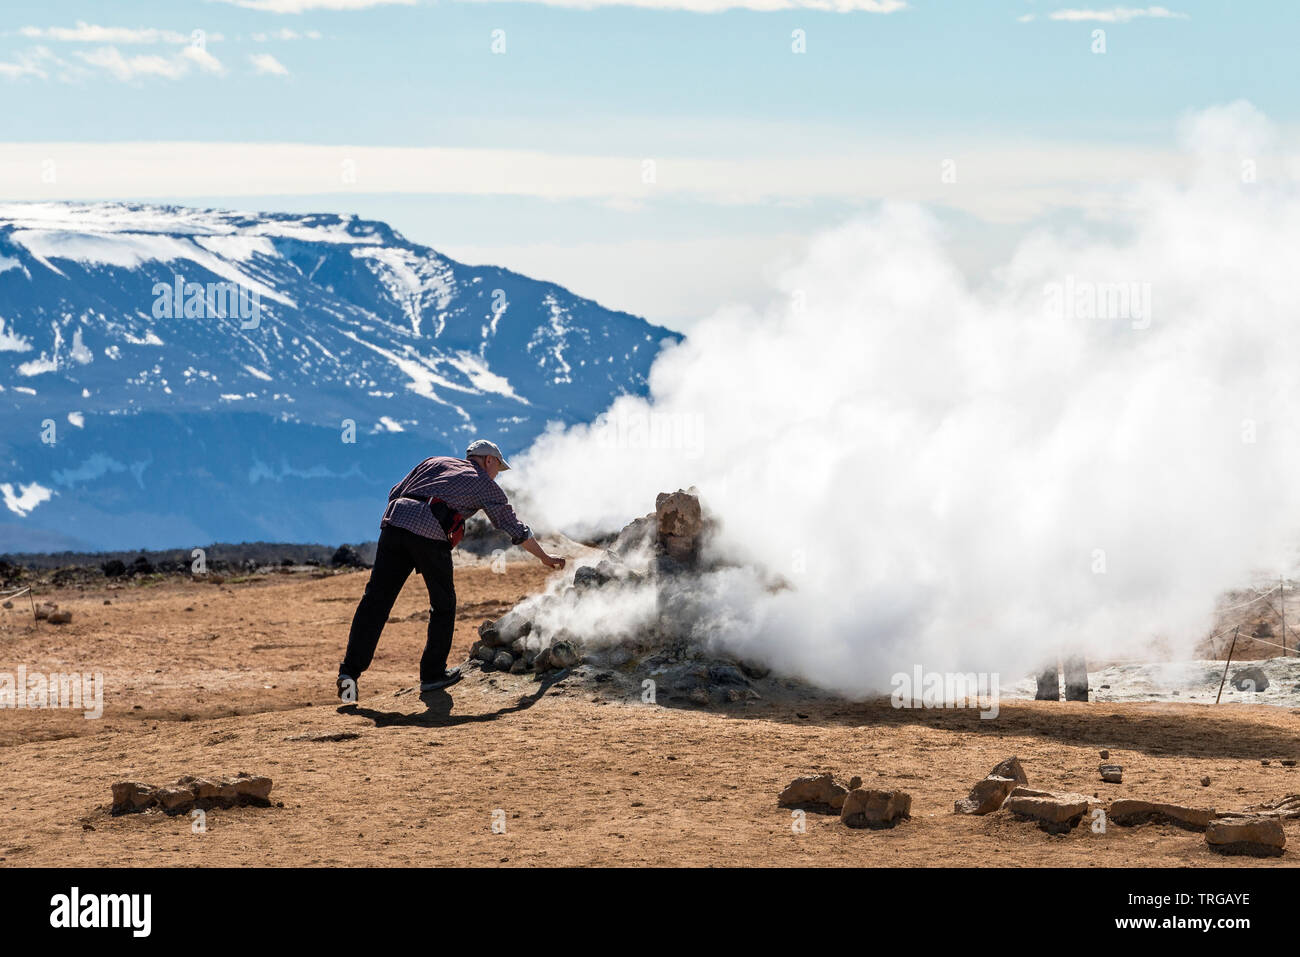 A tourist unwisely tests the heat of a fumarole in the highly active geothermal area at Námafjall (Hverir), near Lake Mývatn in north-east Iceland - Stock Image